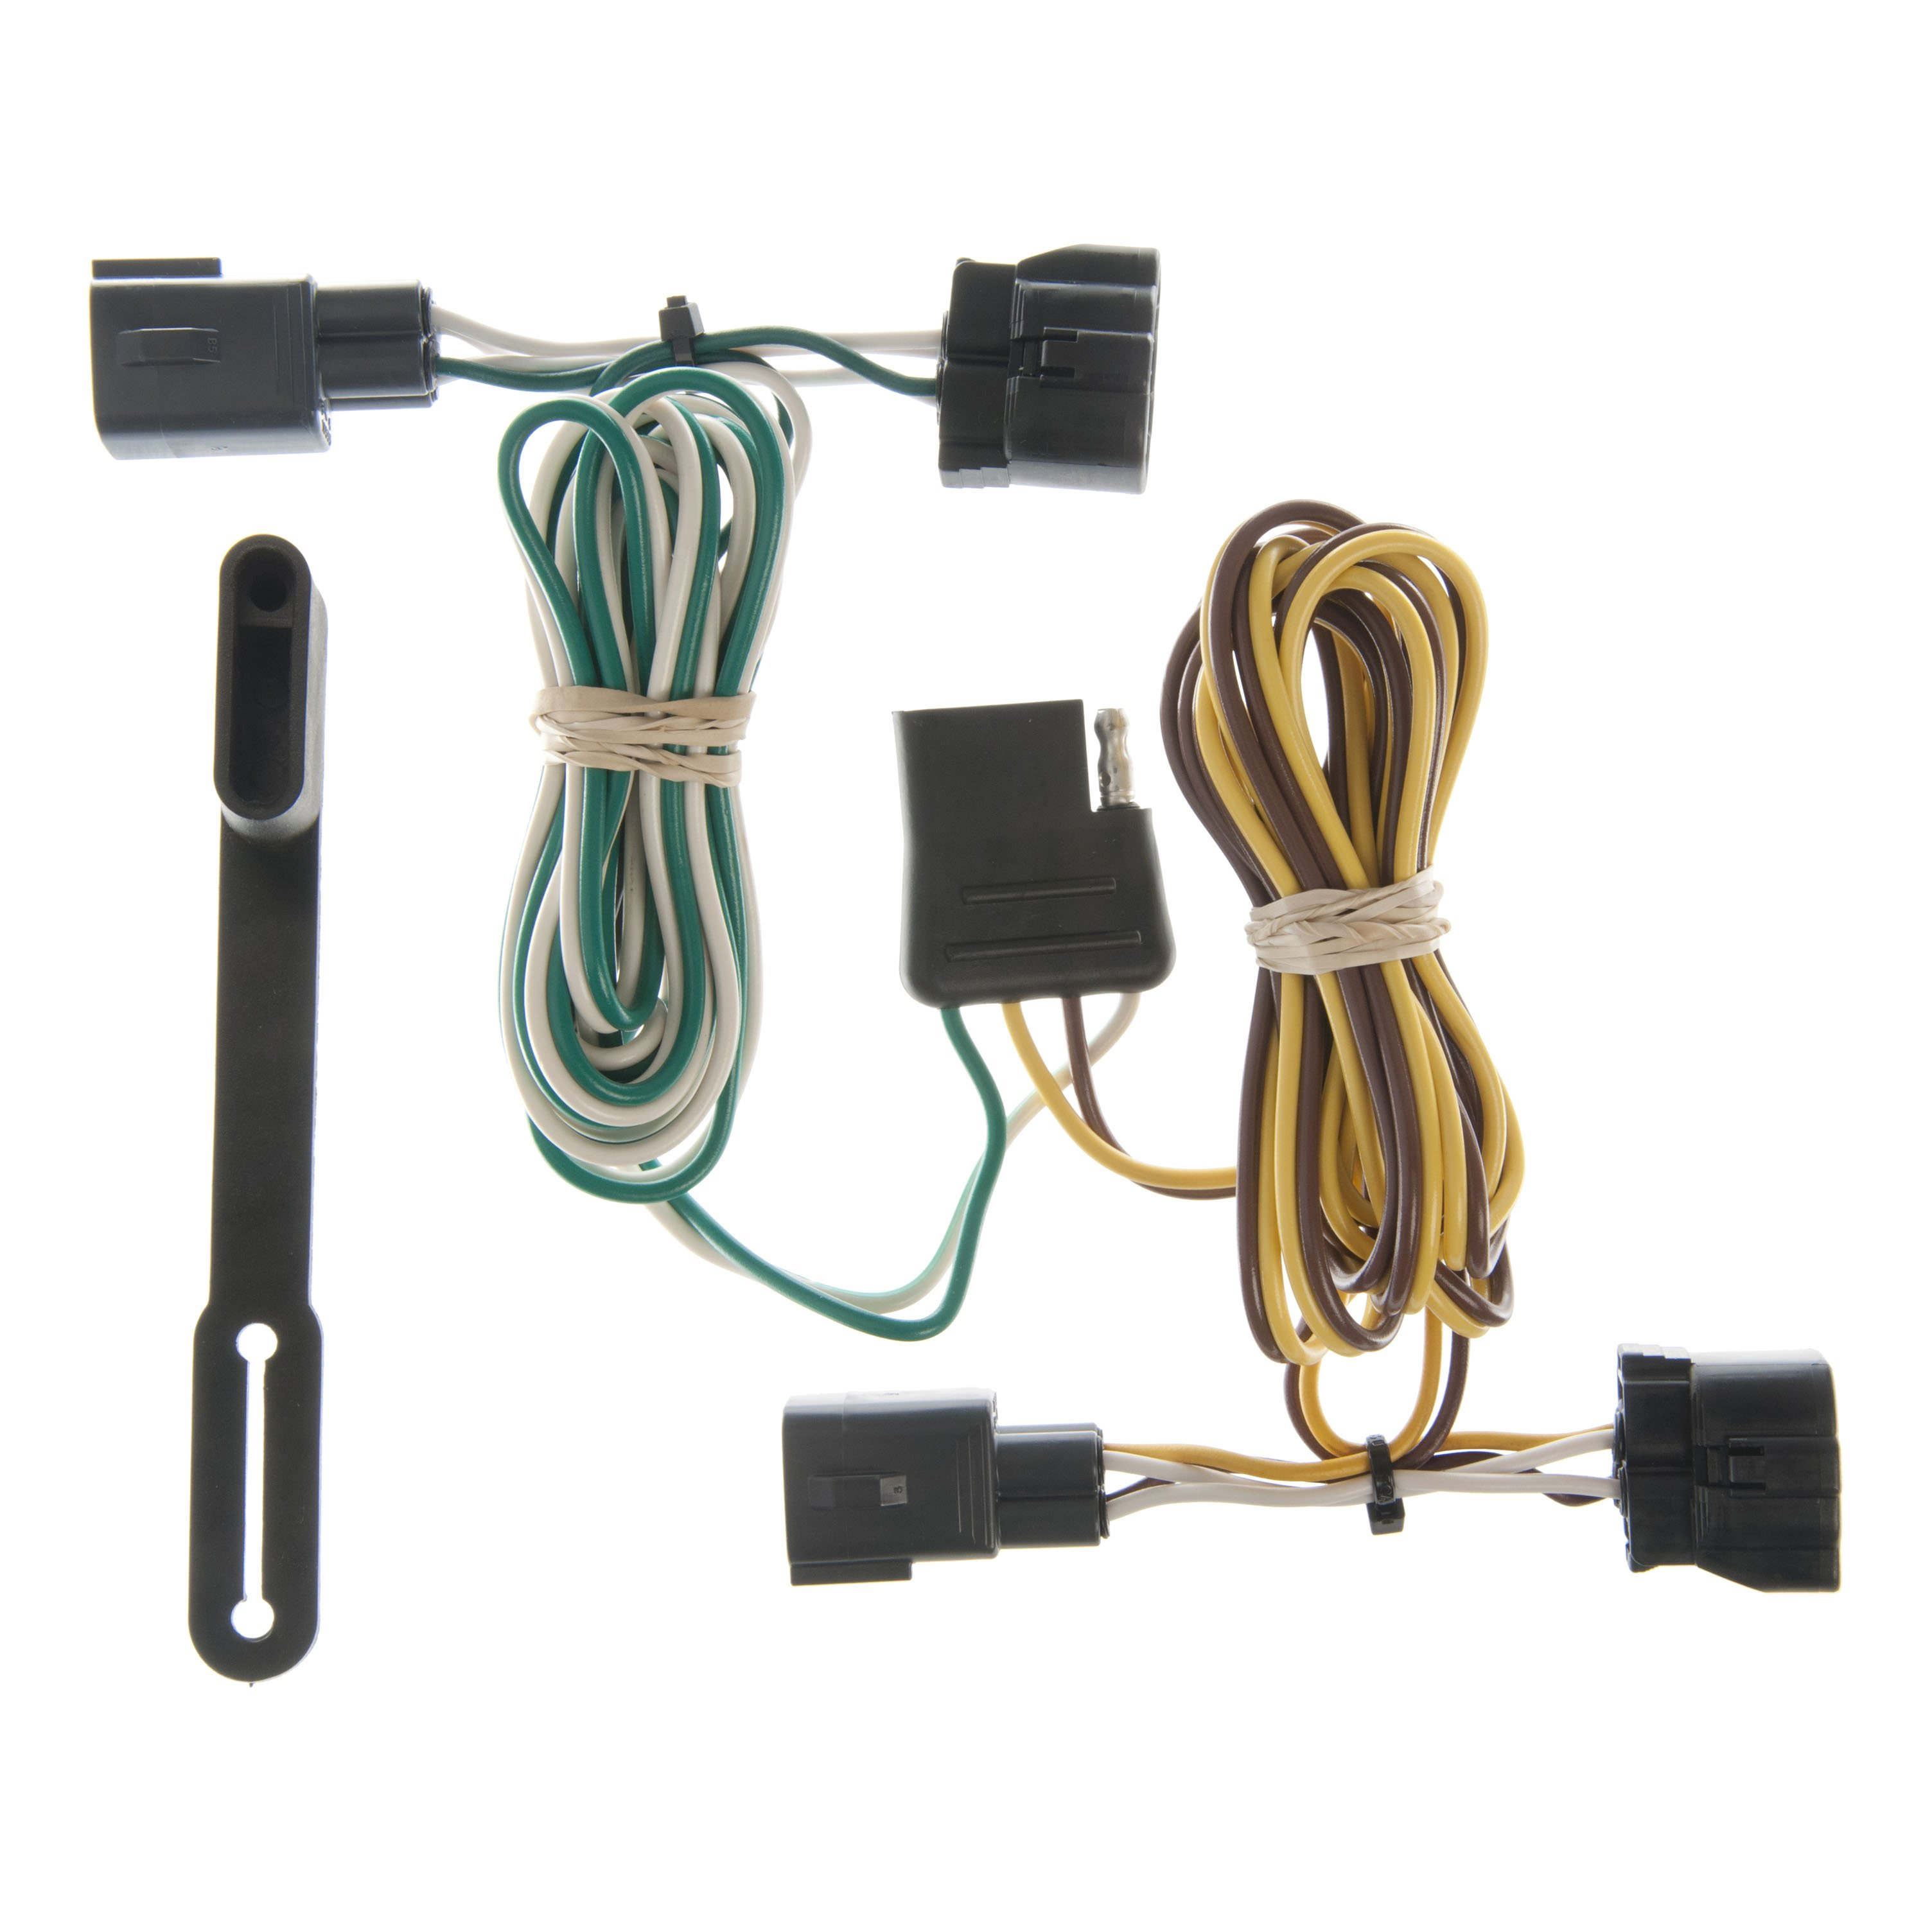 curt vehicle to trailer wiring harness 55329 for dodge dakota ram curt vehicle to trailer wiring harness 55329 for dodge dakota ram